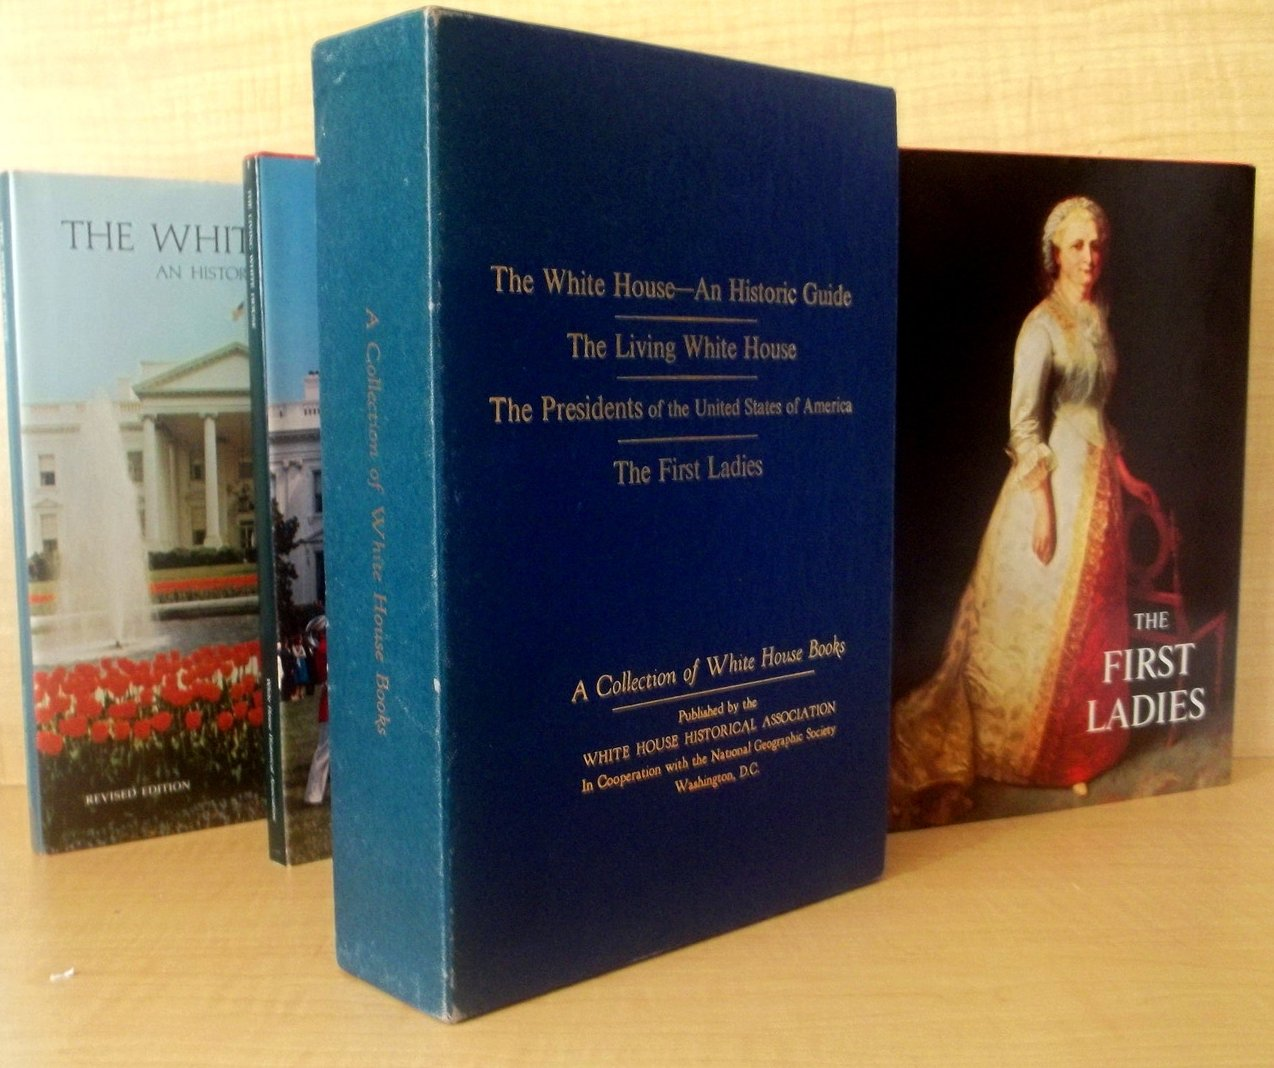 Image 4 of Collection of White House Books First Ladies First Edition 4 volumes